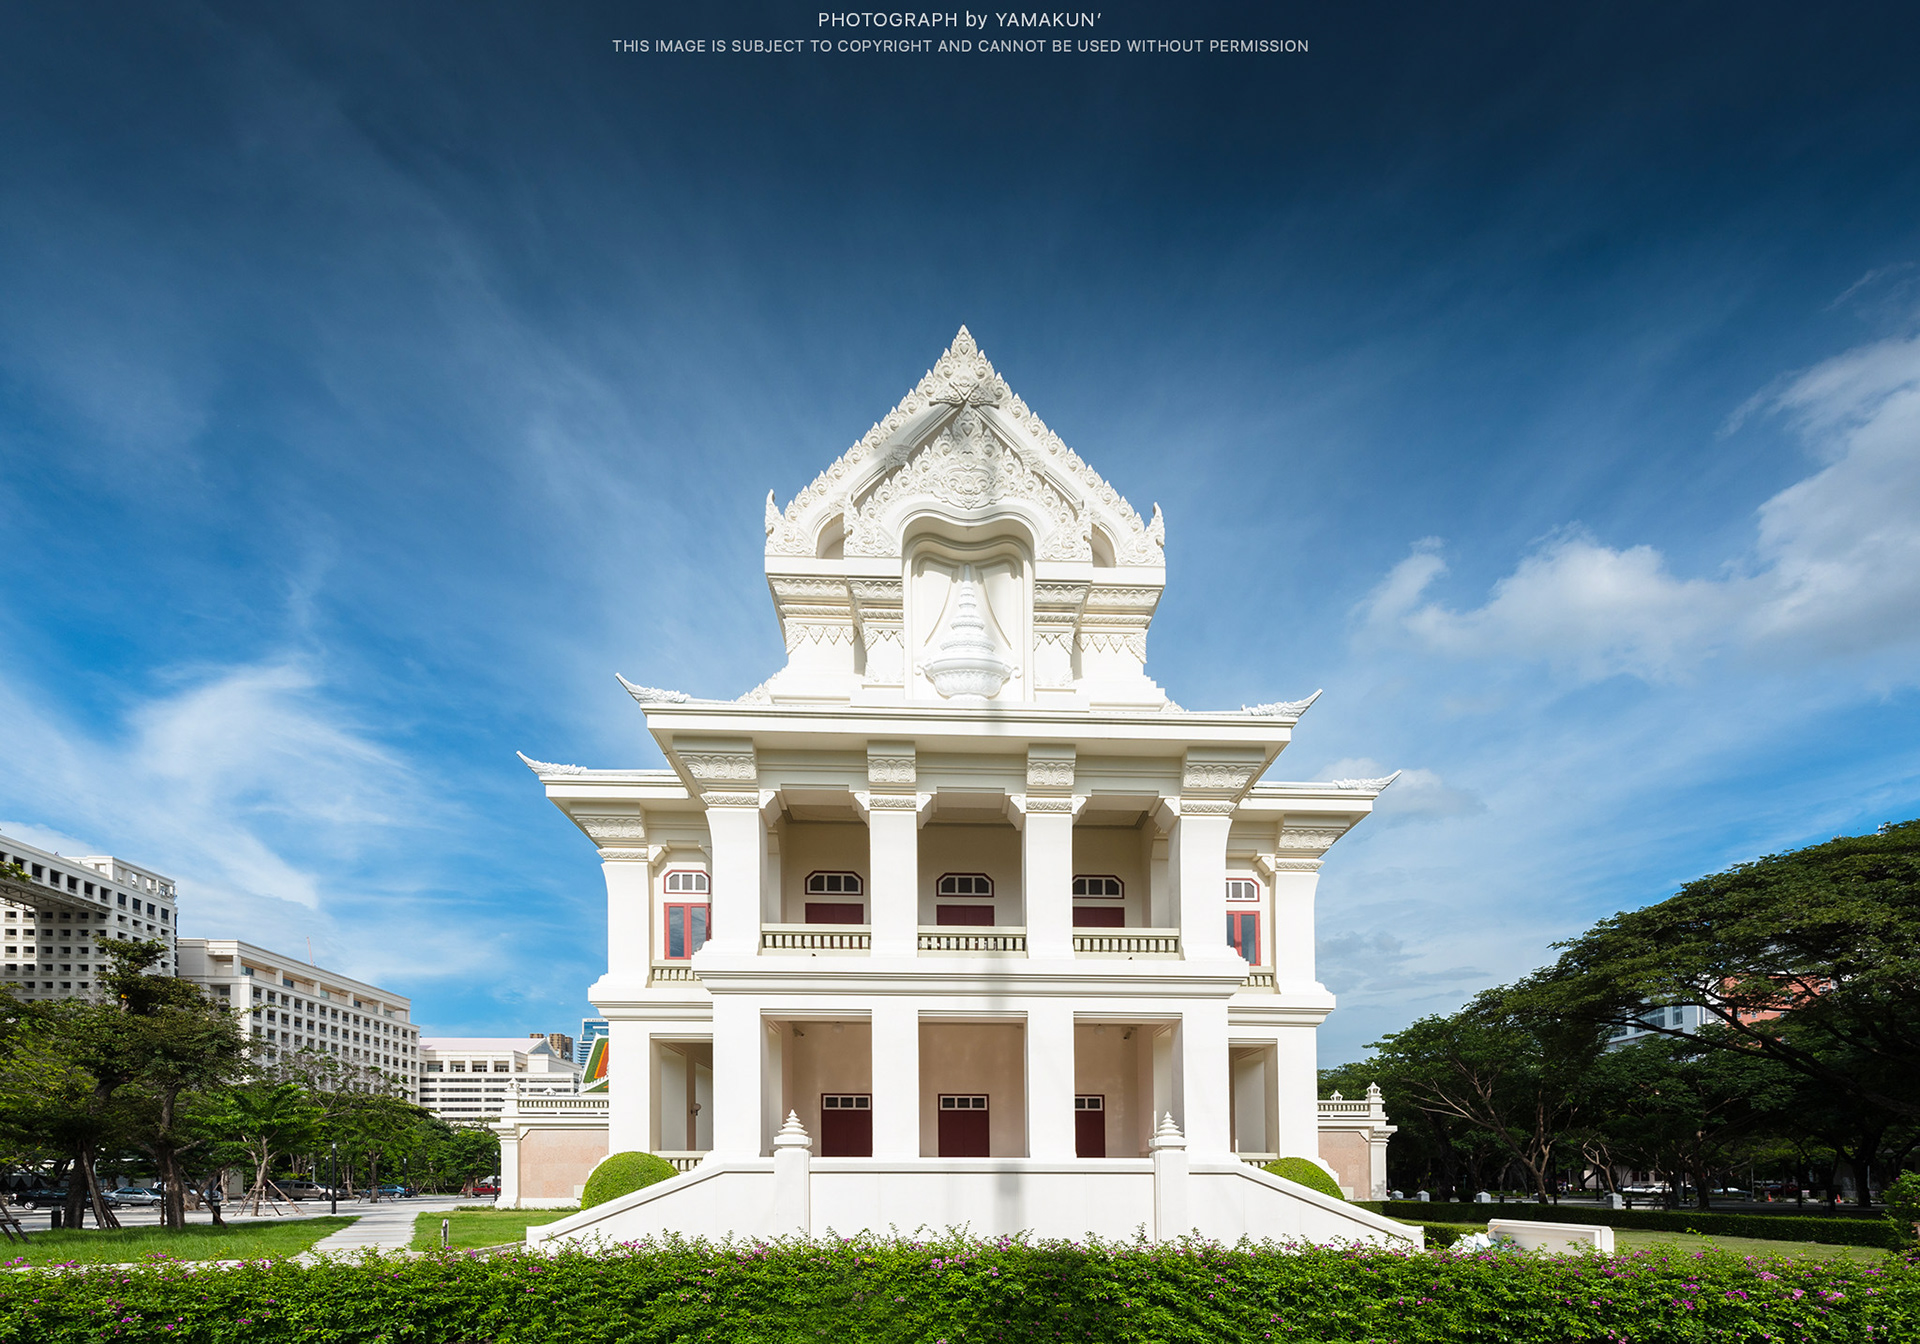 Images of Chulalongkorn University taken in 2015. Source Image: Yamastudio